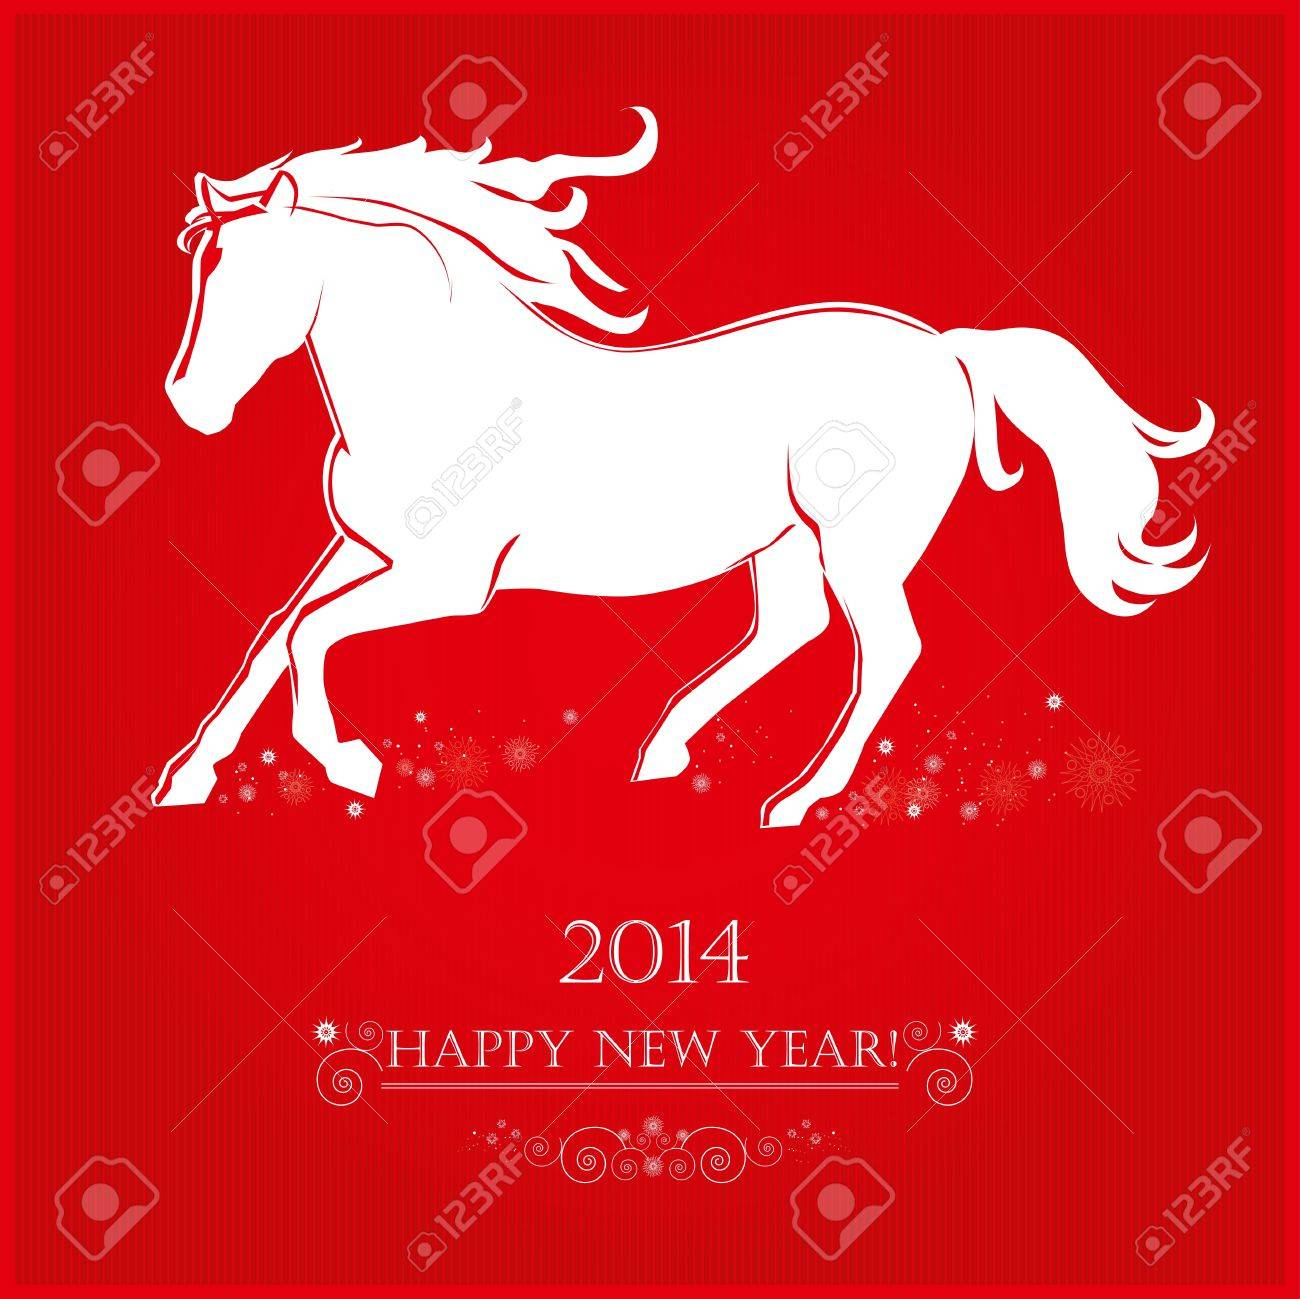 Running Horse on bright red background  Merry Christmas and Happy new year  Greeting card Stock Vector - 22164260